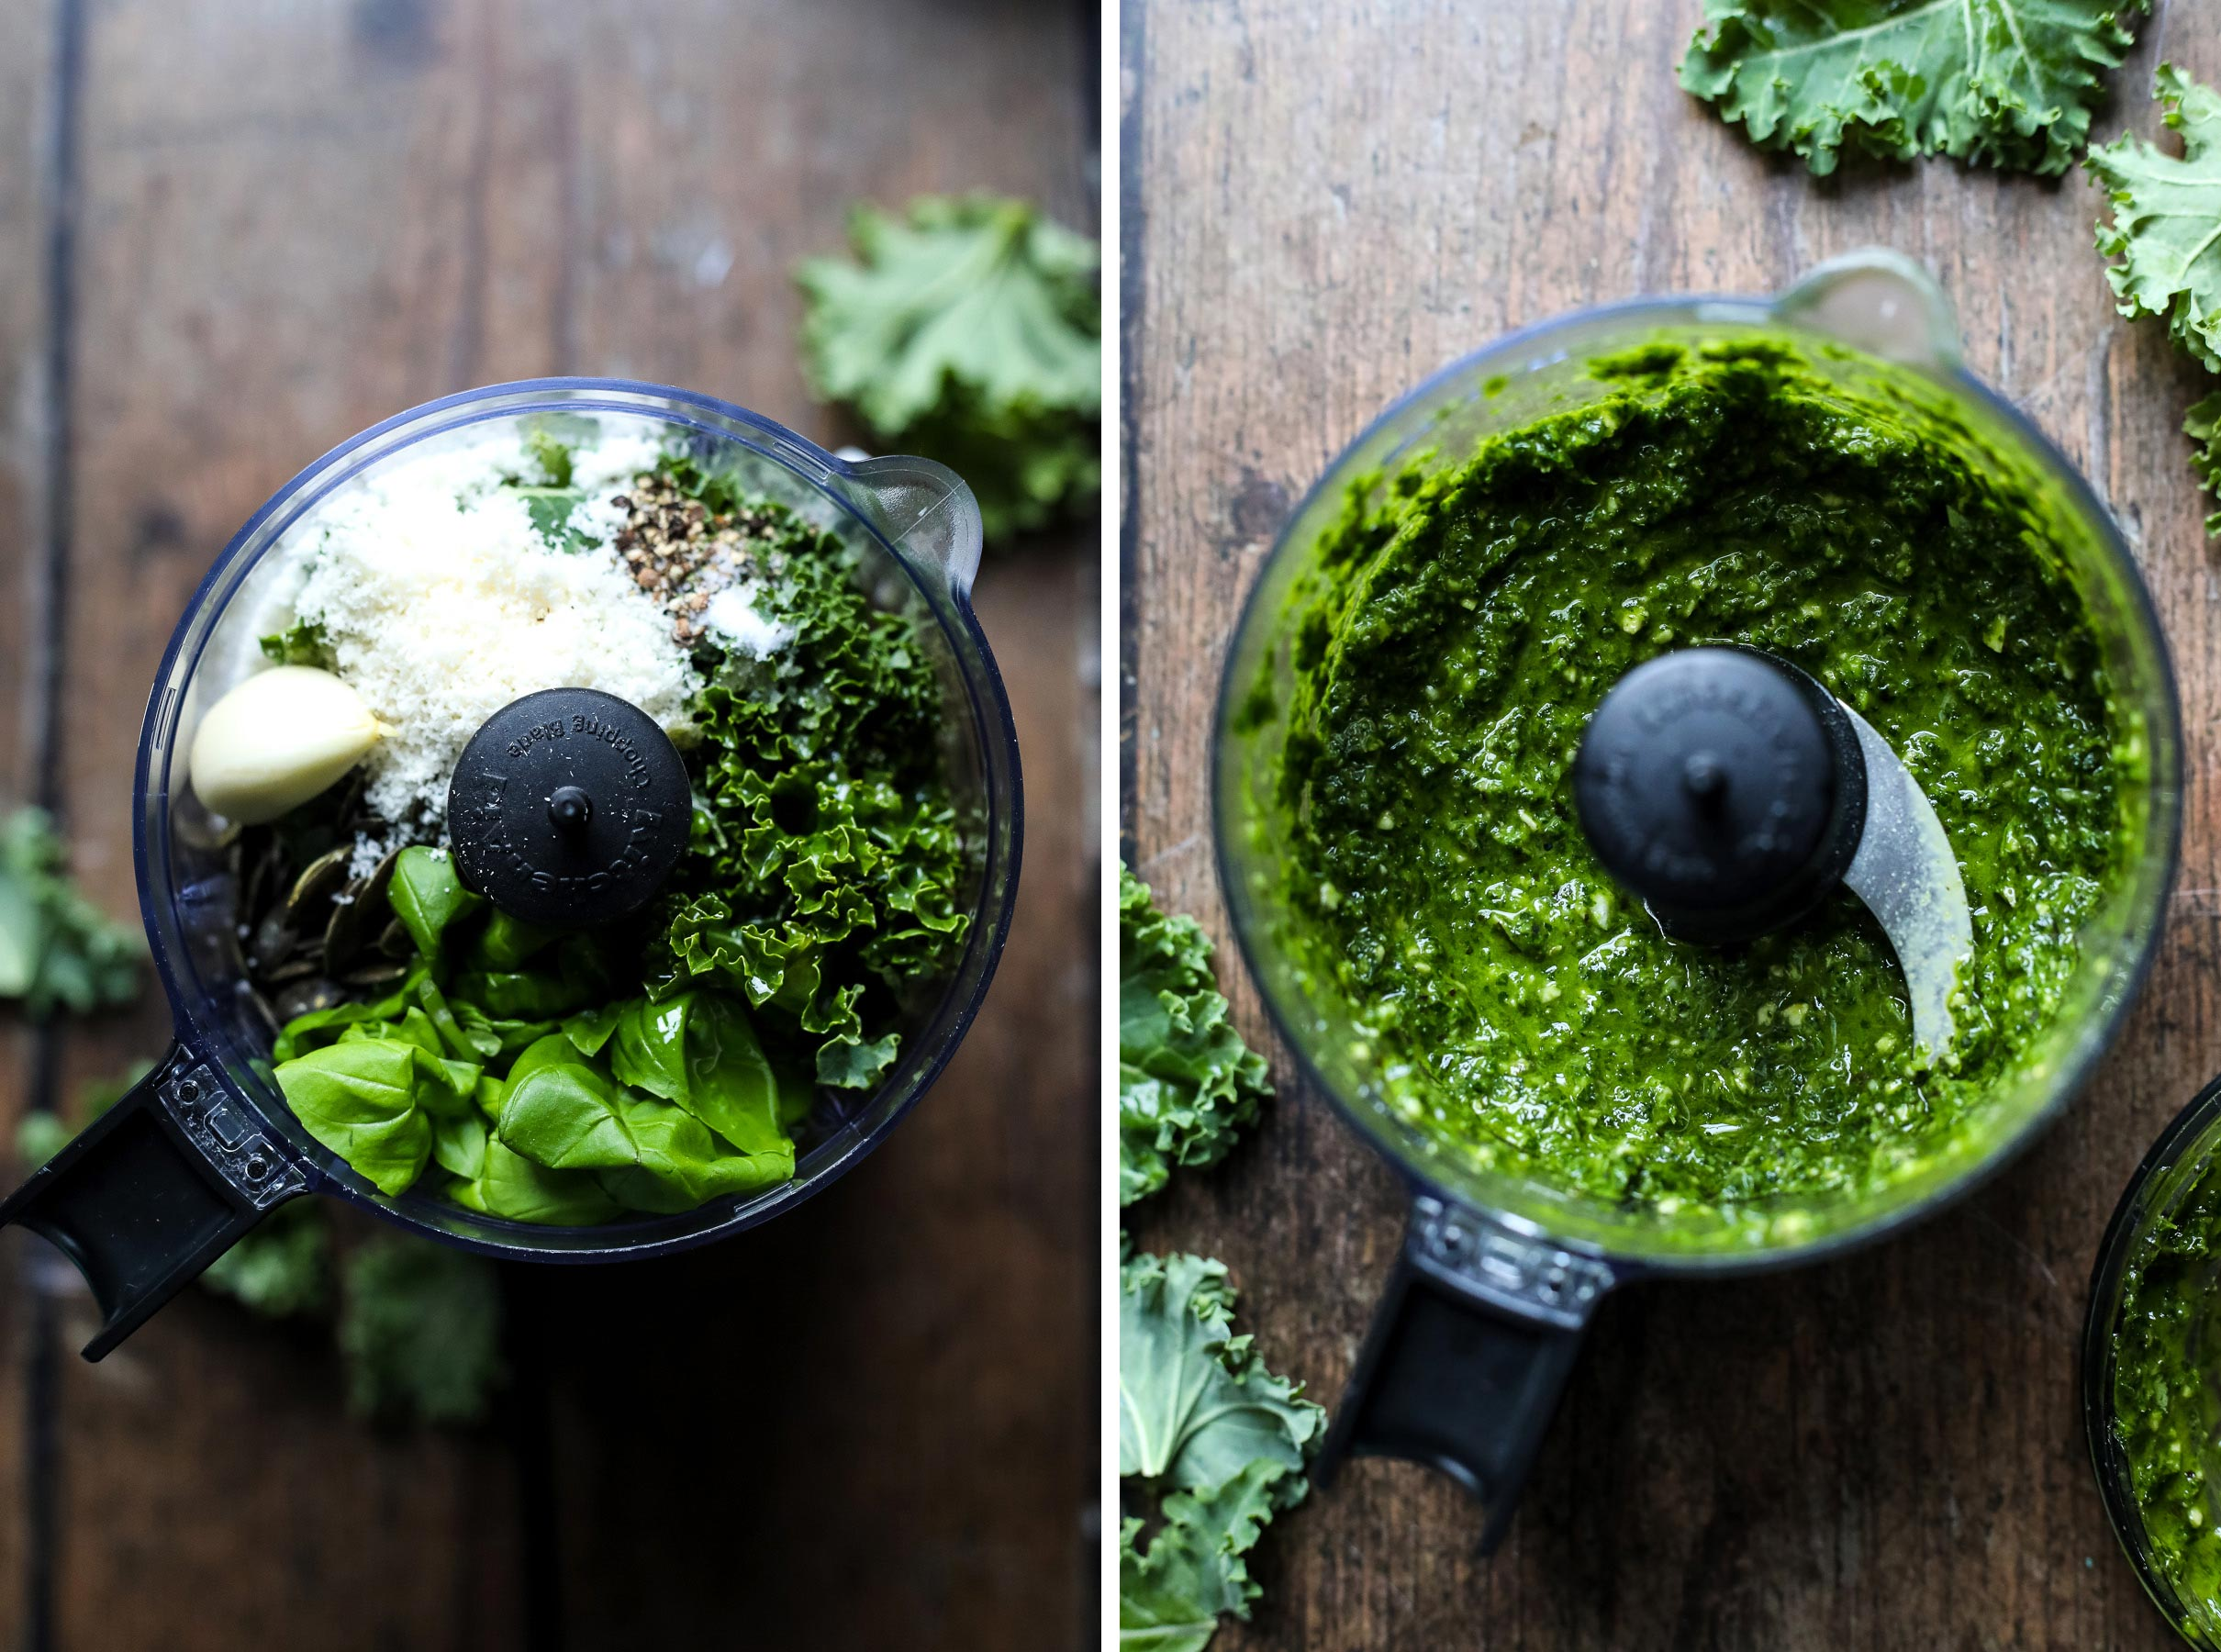 Pesto Dressing for the kale salad.